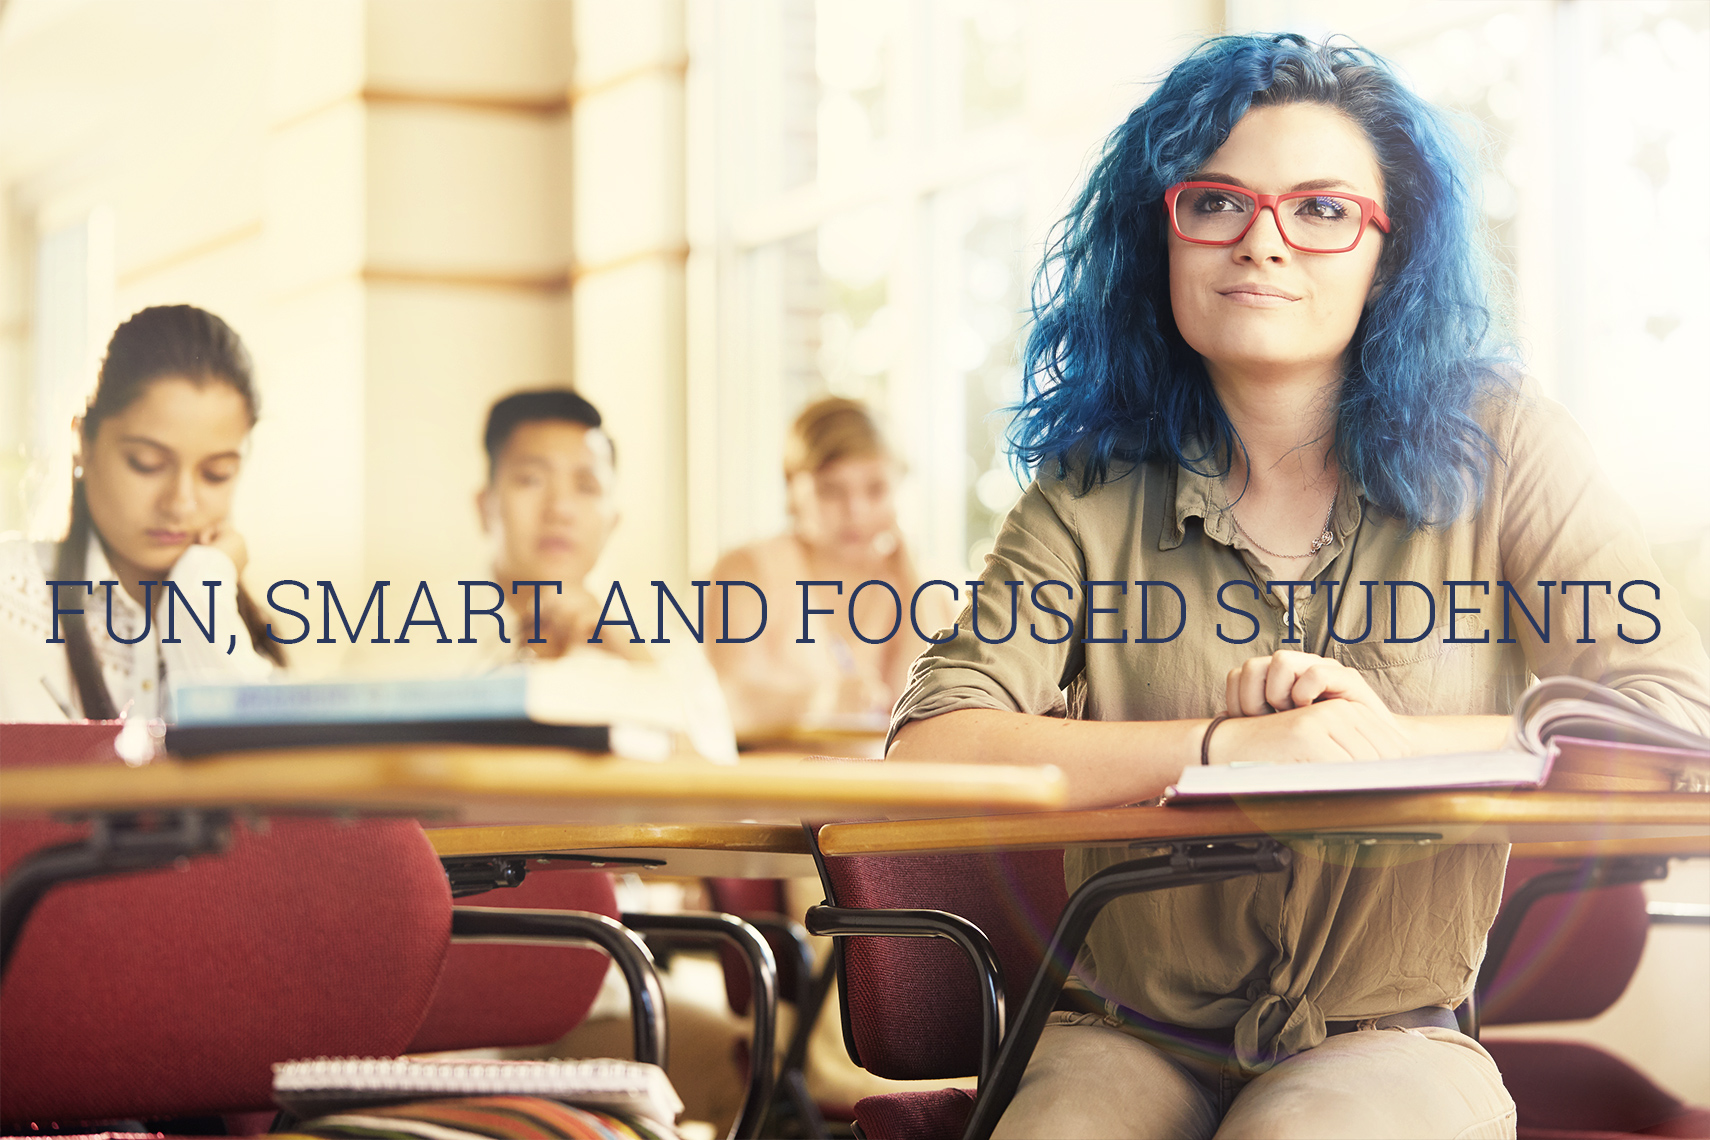 Fun_smart_focused_462-3